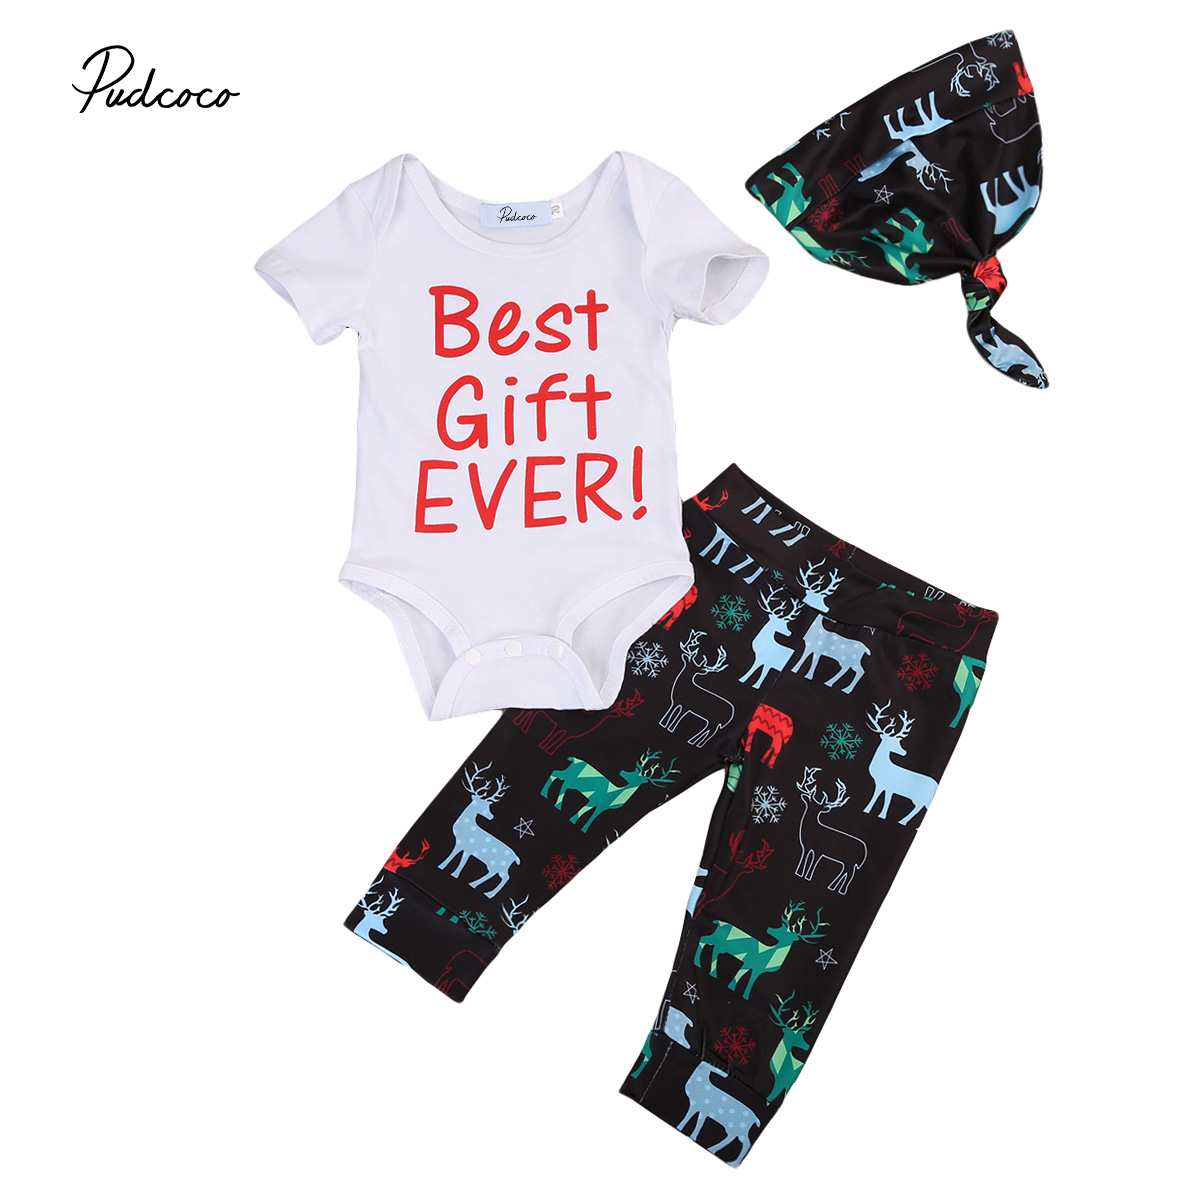 3PCS Newborn Kids Baby Boy Girl Tops Short Sleeve Jumpsuit Romper+Long Pants Hat Outfit Cotton Winter Clothes Set Birthday Gift